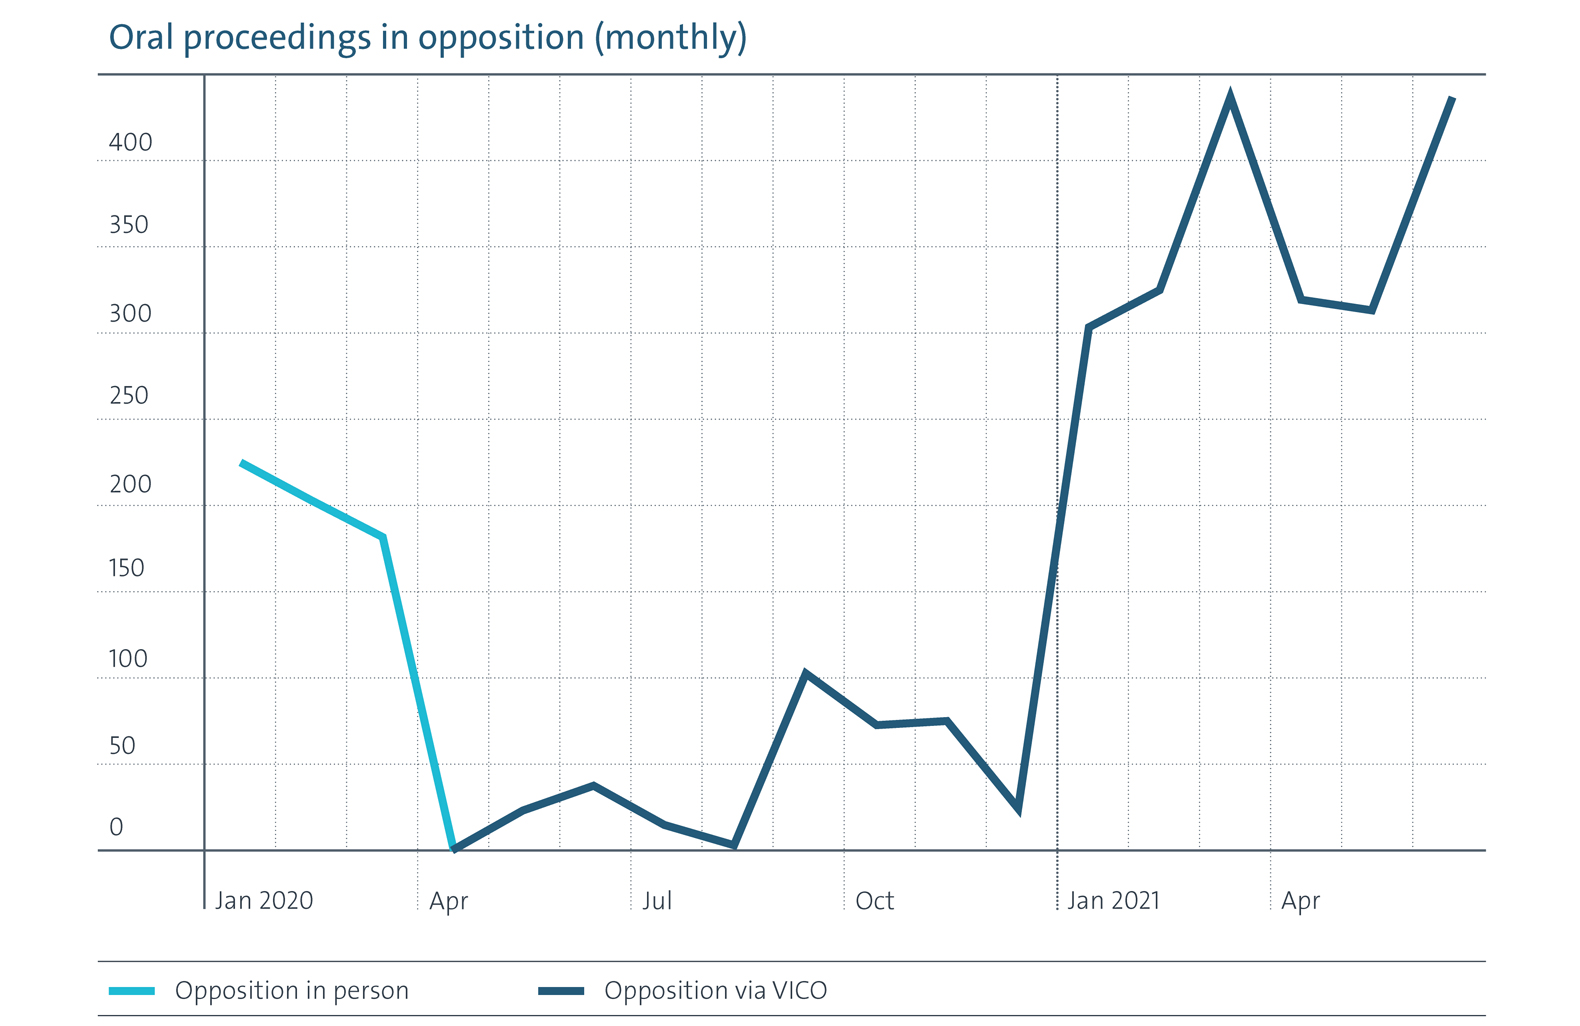 Oral proceedings in opposition (monthly)